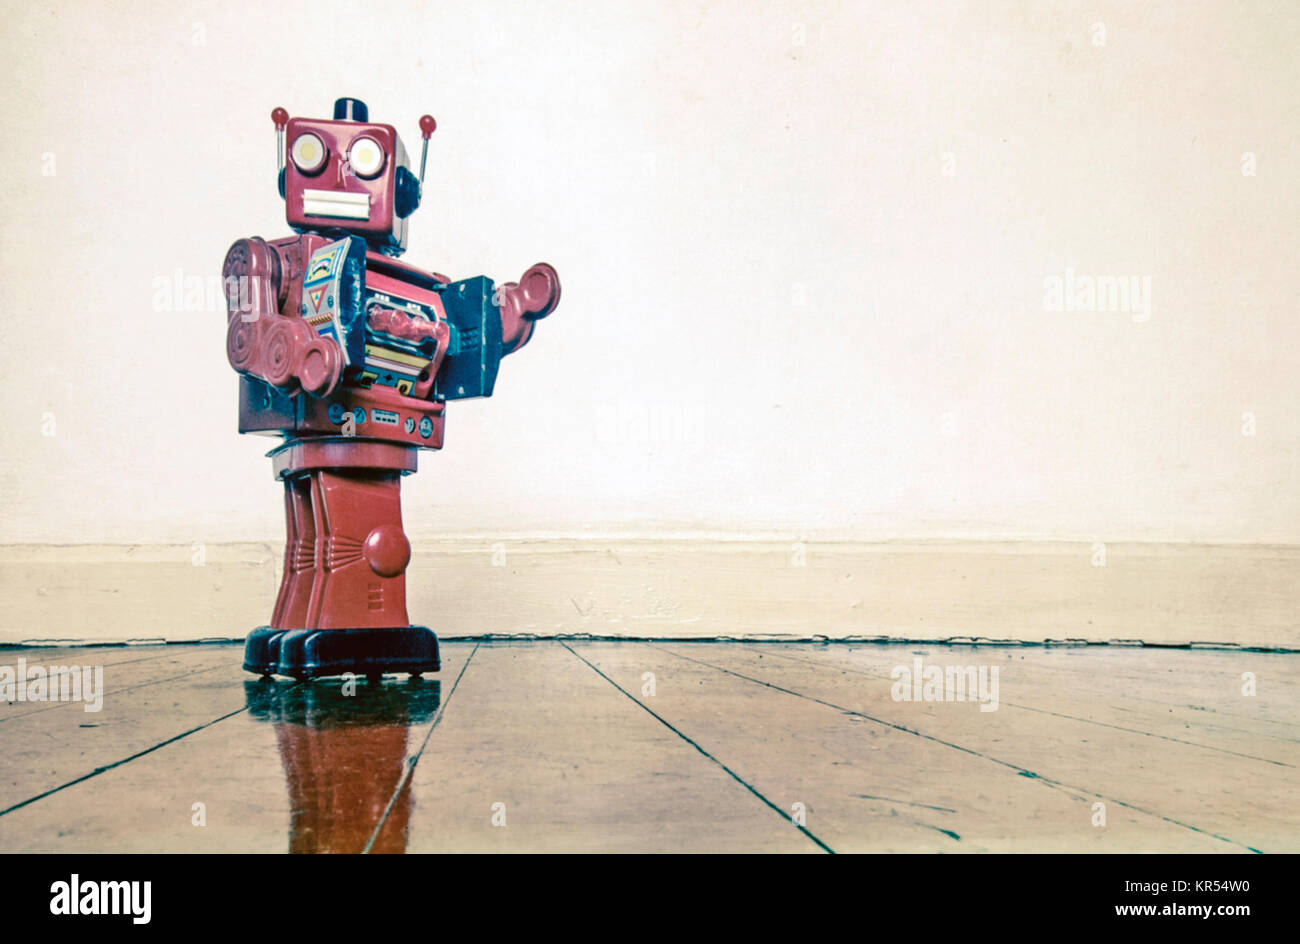 got to go retro red robot on old woden floor with reflection - Stock Image